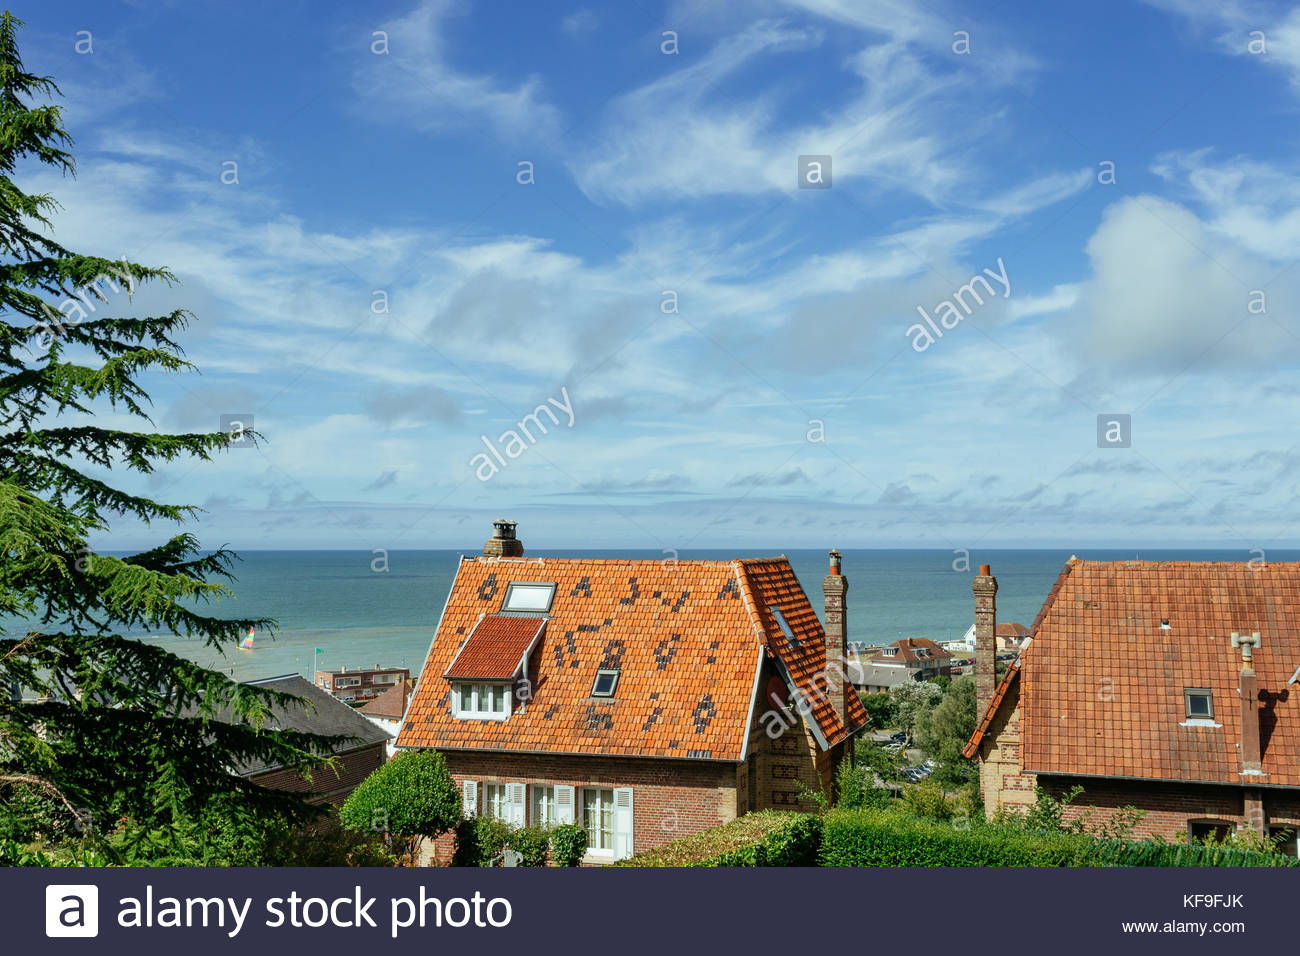 Country houses with sea view in the region of normandy france on beautiful countryside lifestyle and typical french architecture and country landscapes sciox Images